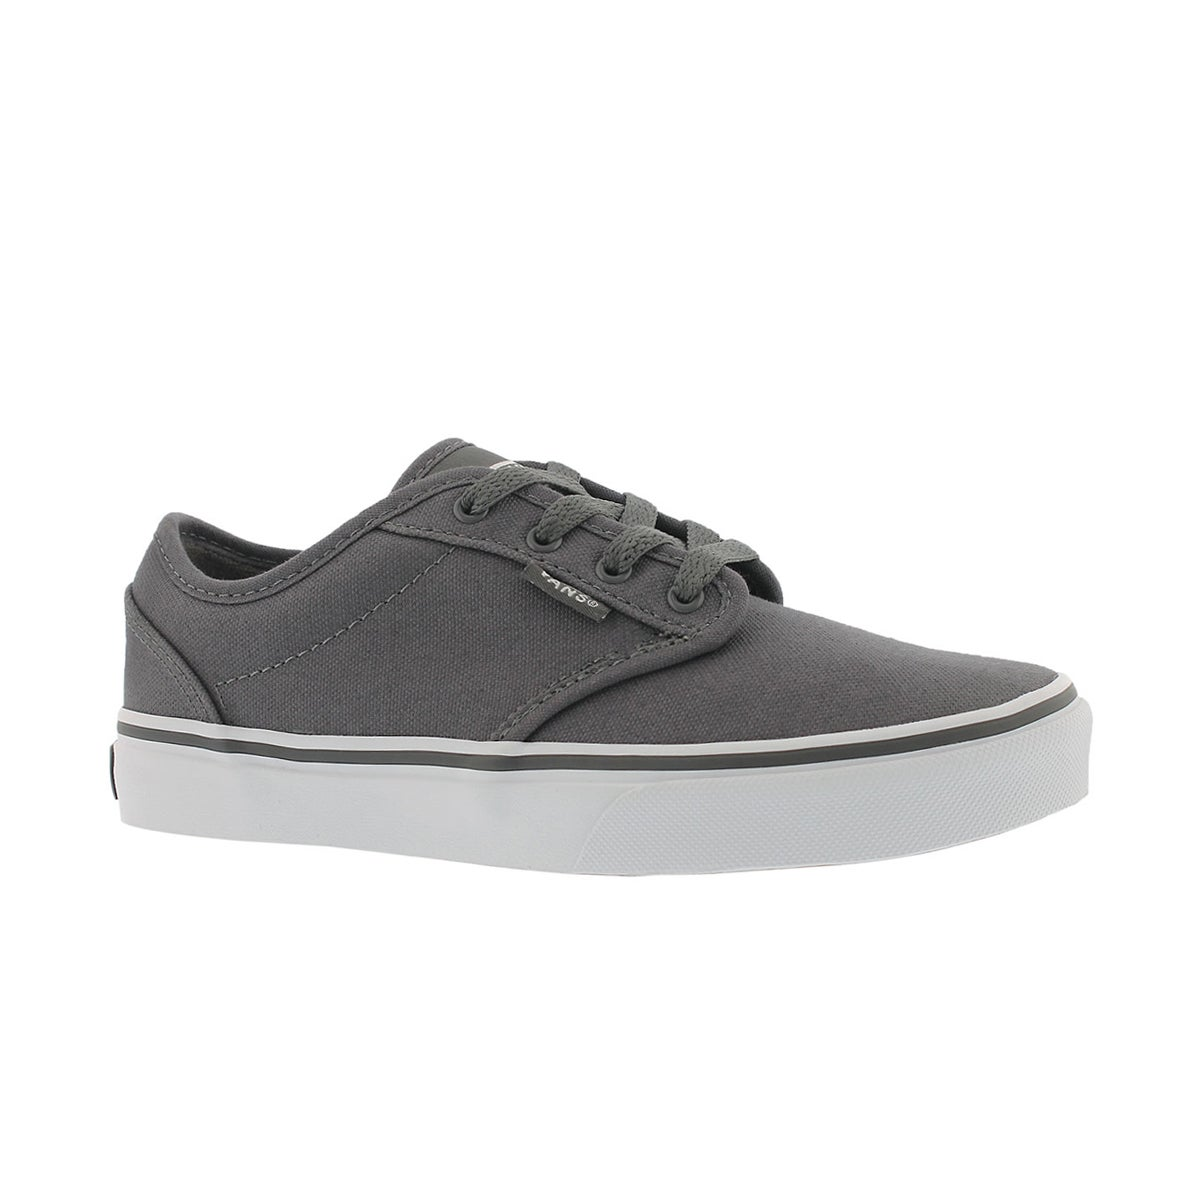 Boys' ATWOOD pewter/white lace up sneakers